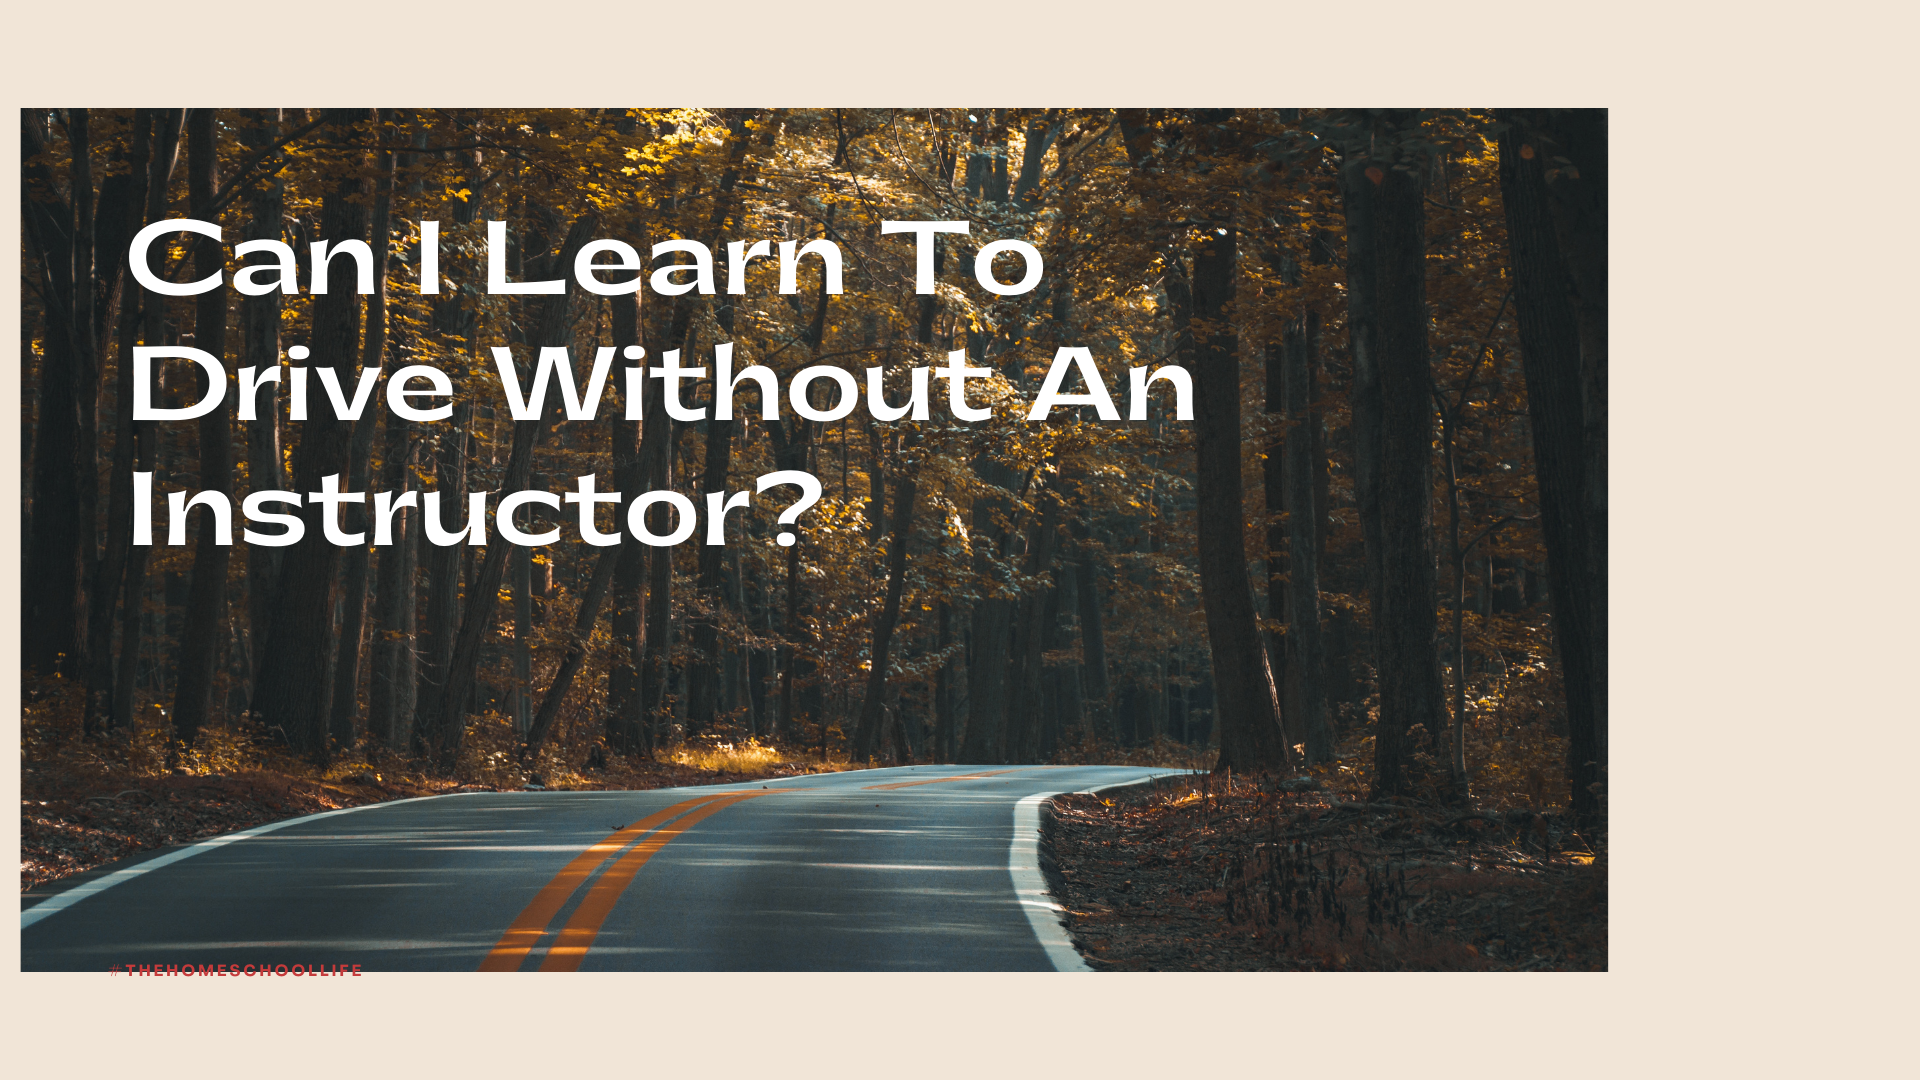 Can I Learn To Drive Without An Instructor?